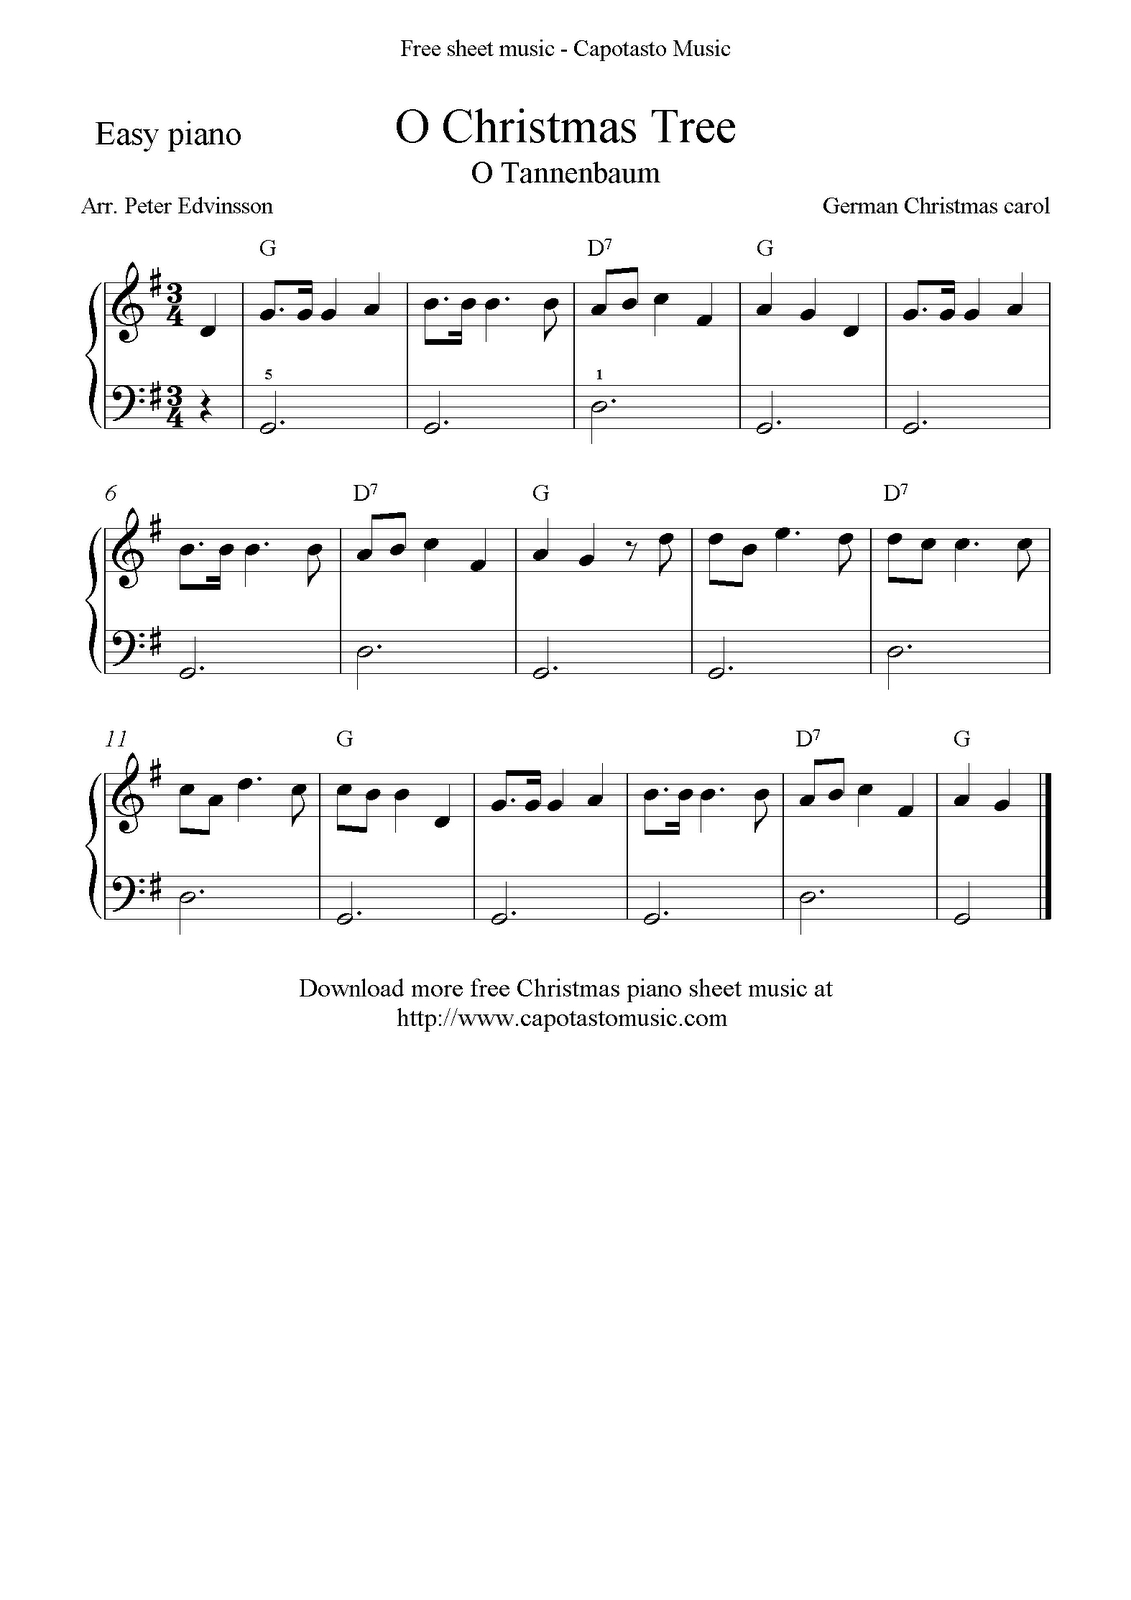 Free Christmas Sheet Music For Easy Piano Solo, O Christmas Tree - Free Printable Christmas Sheet Music For Piano